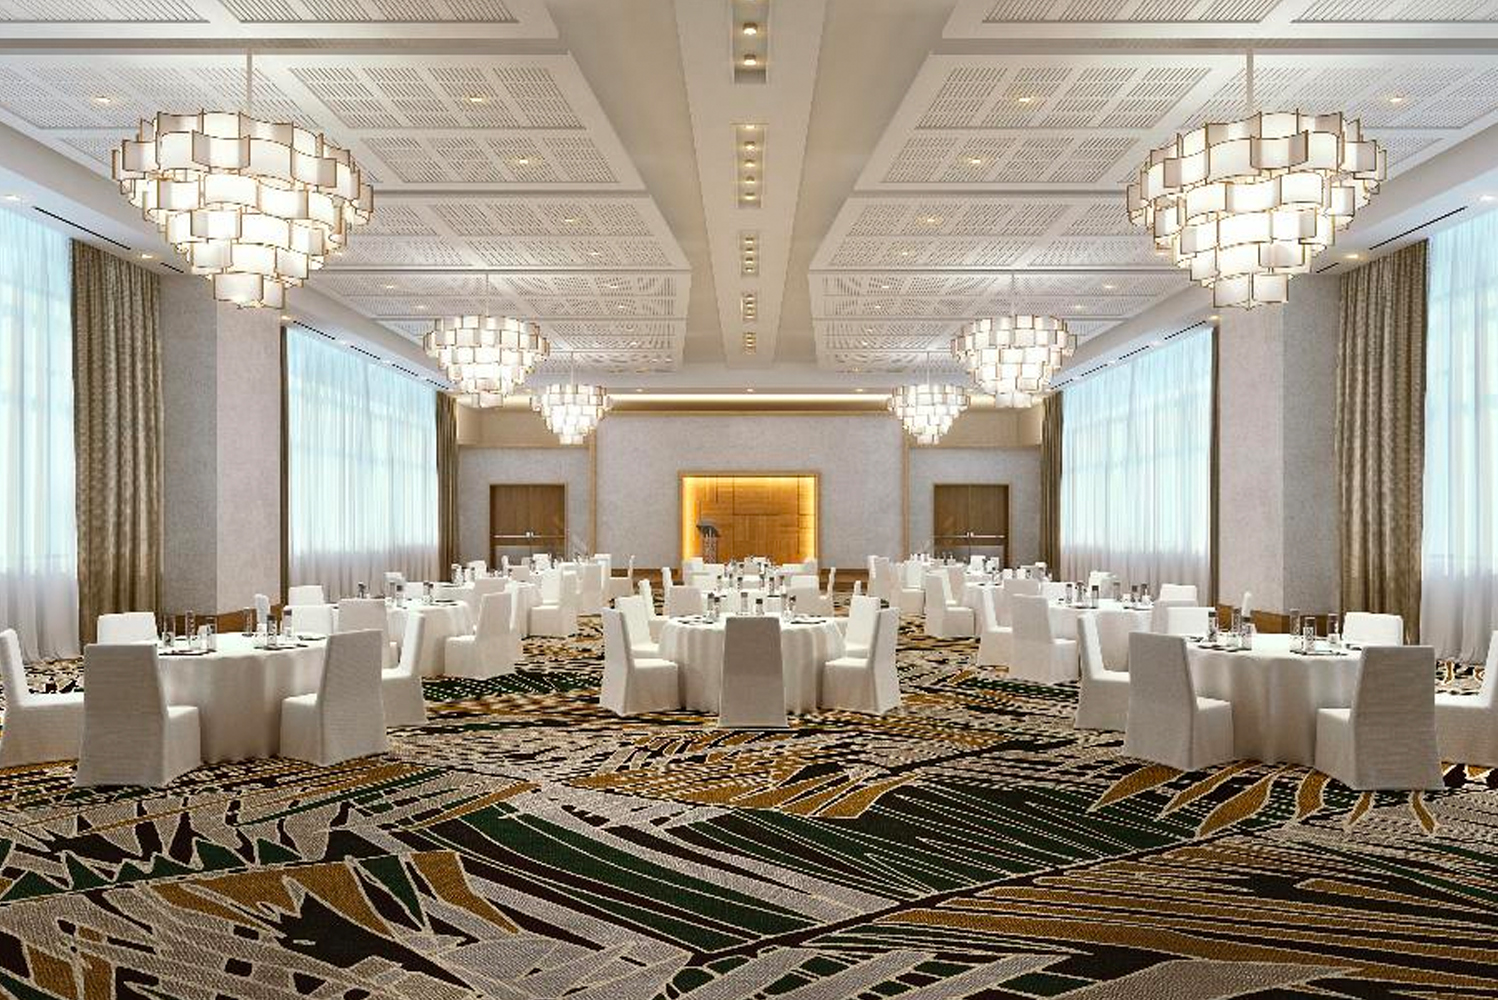 Conrad Brickell is undergoing renovation that is expected to be completed this December.